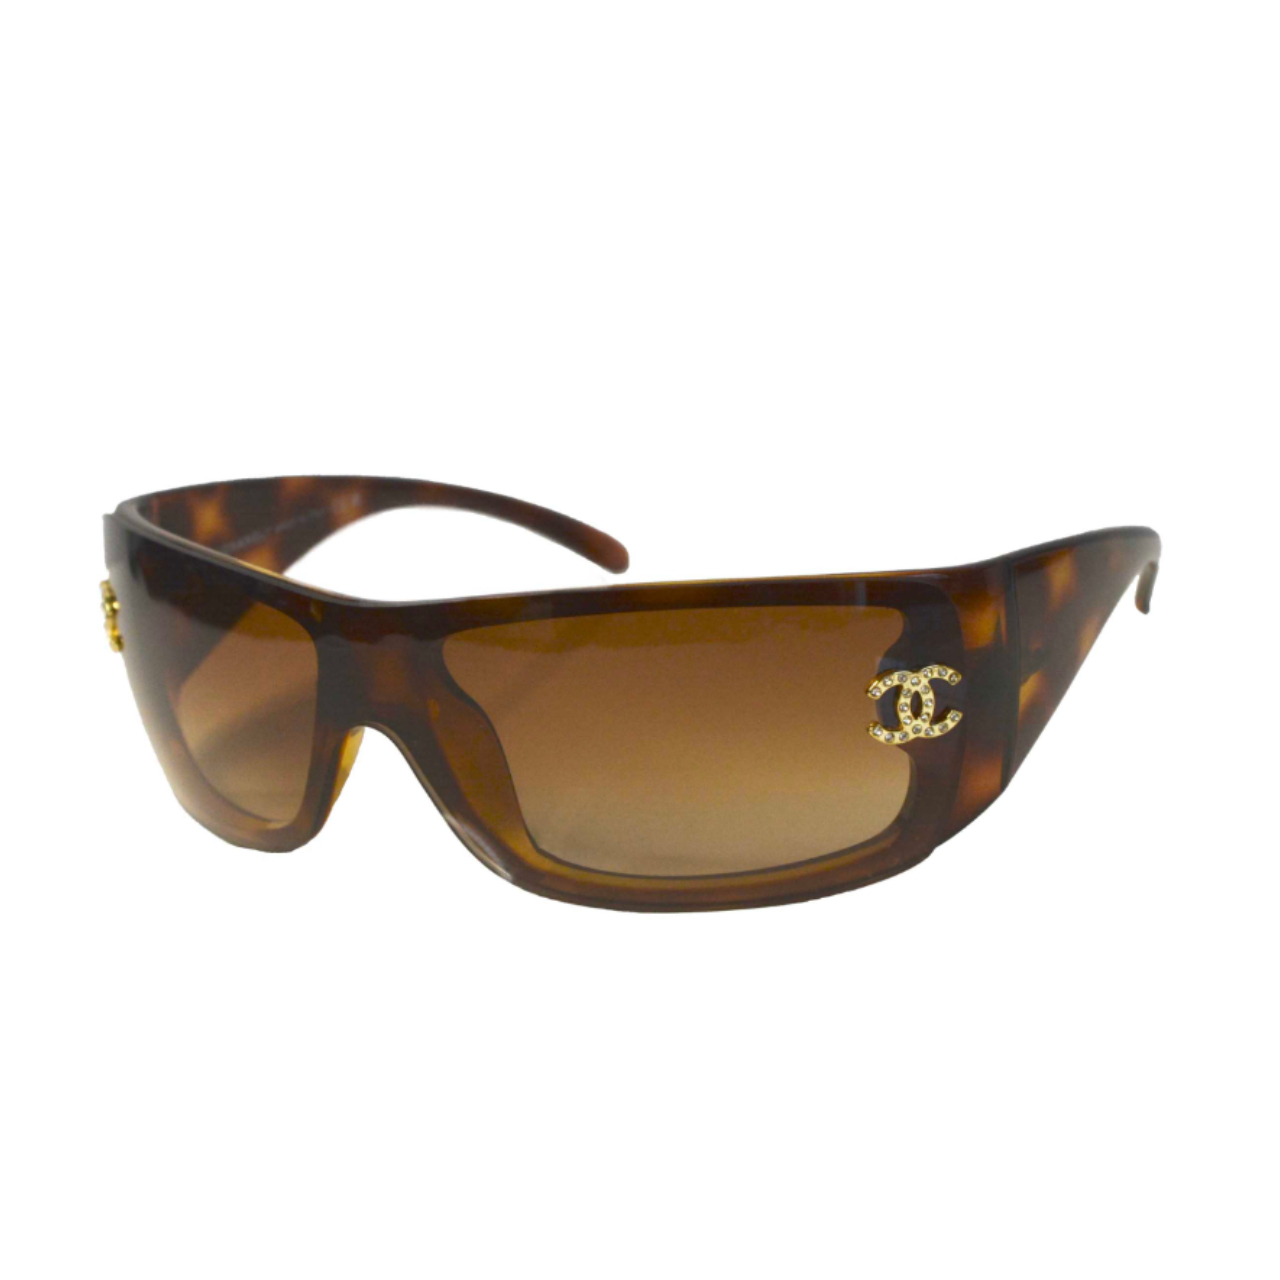 Vintage Chanel Diamante Sunglasses in Tortoiseshell Brown | NITRYL